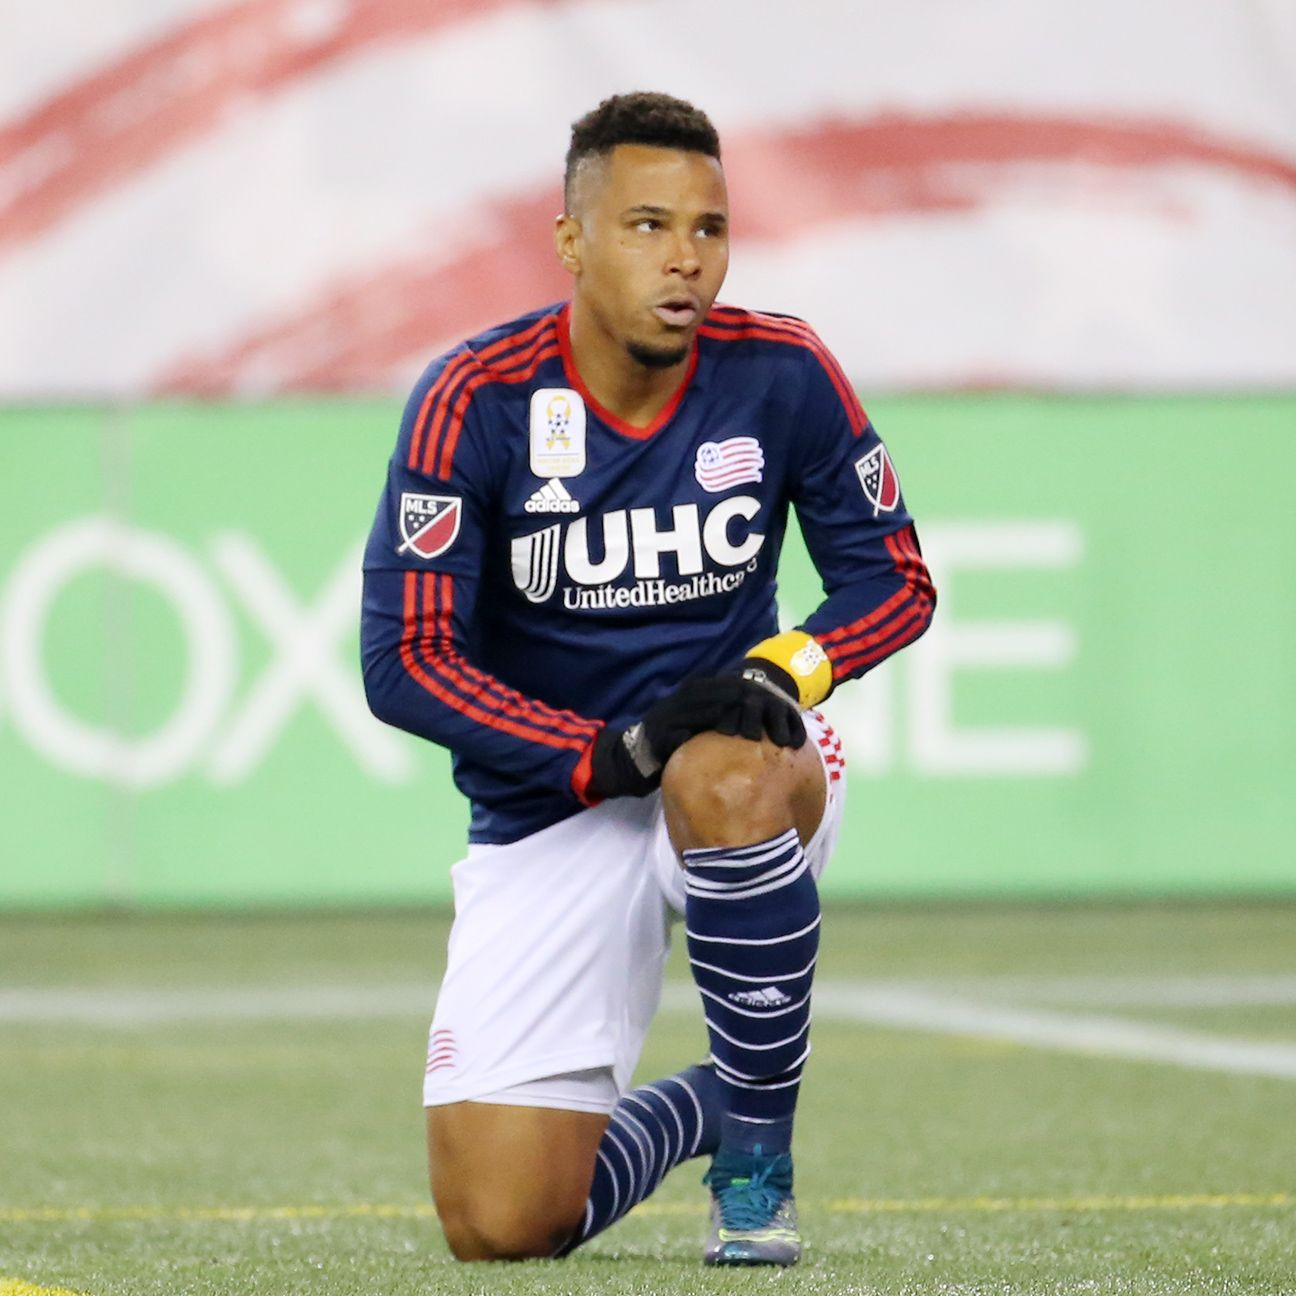 Charlie Davies knows the Revs can't go into the playoffs without a victory in more than a month.